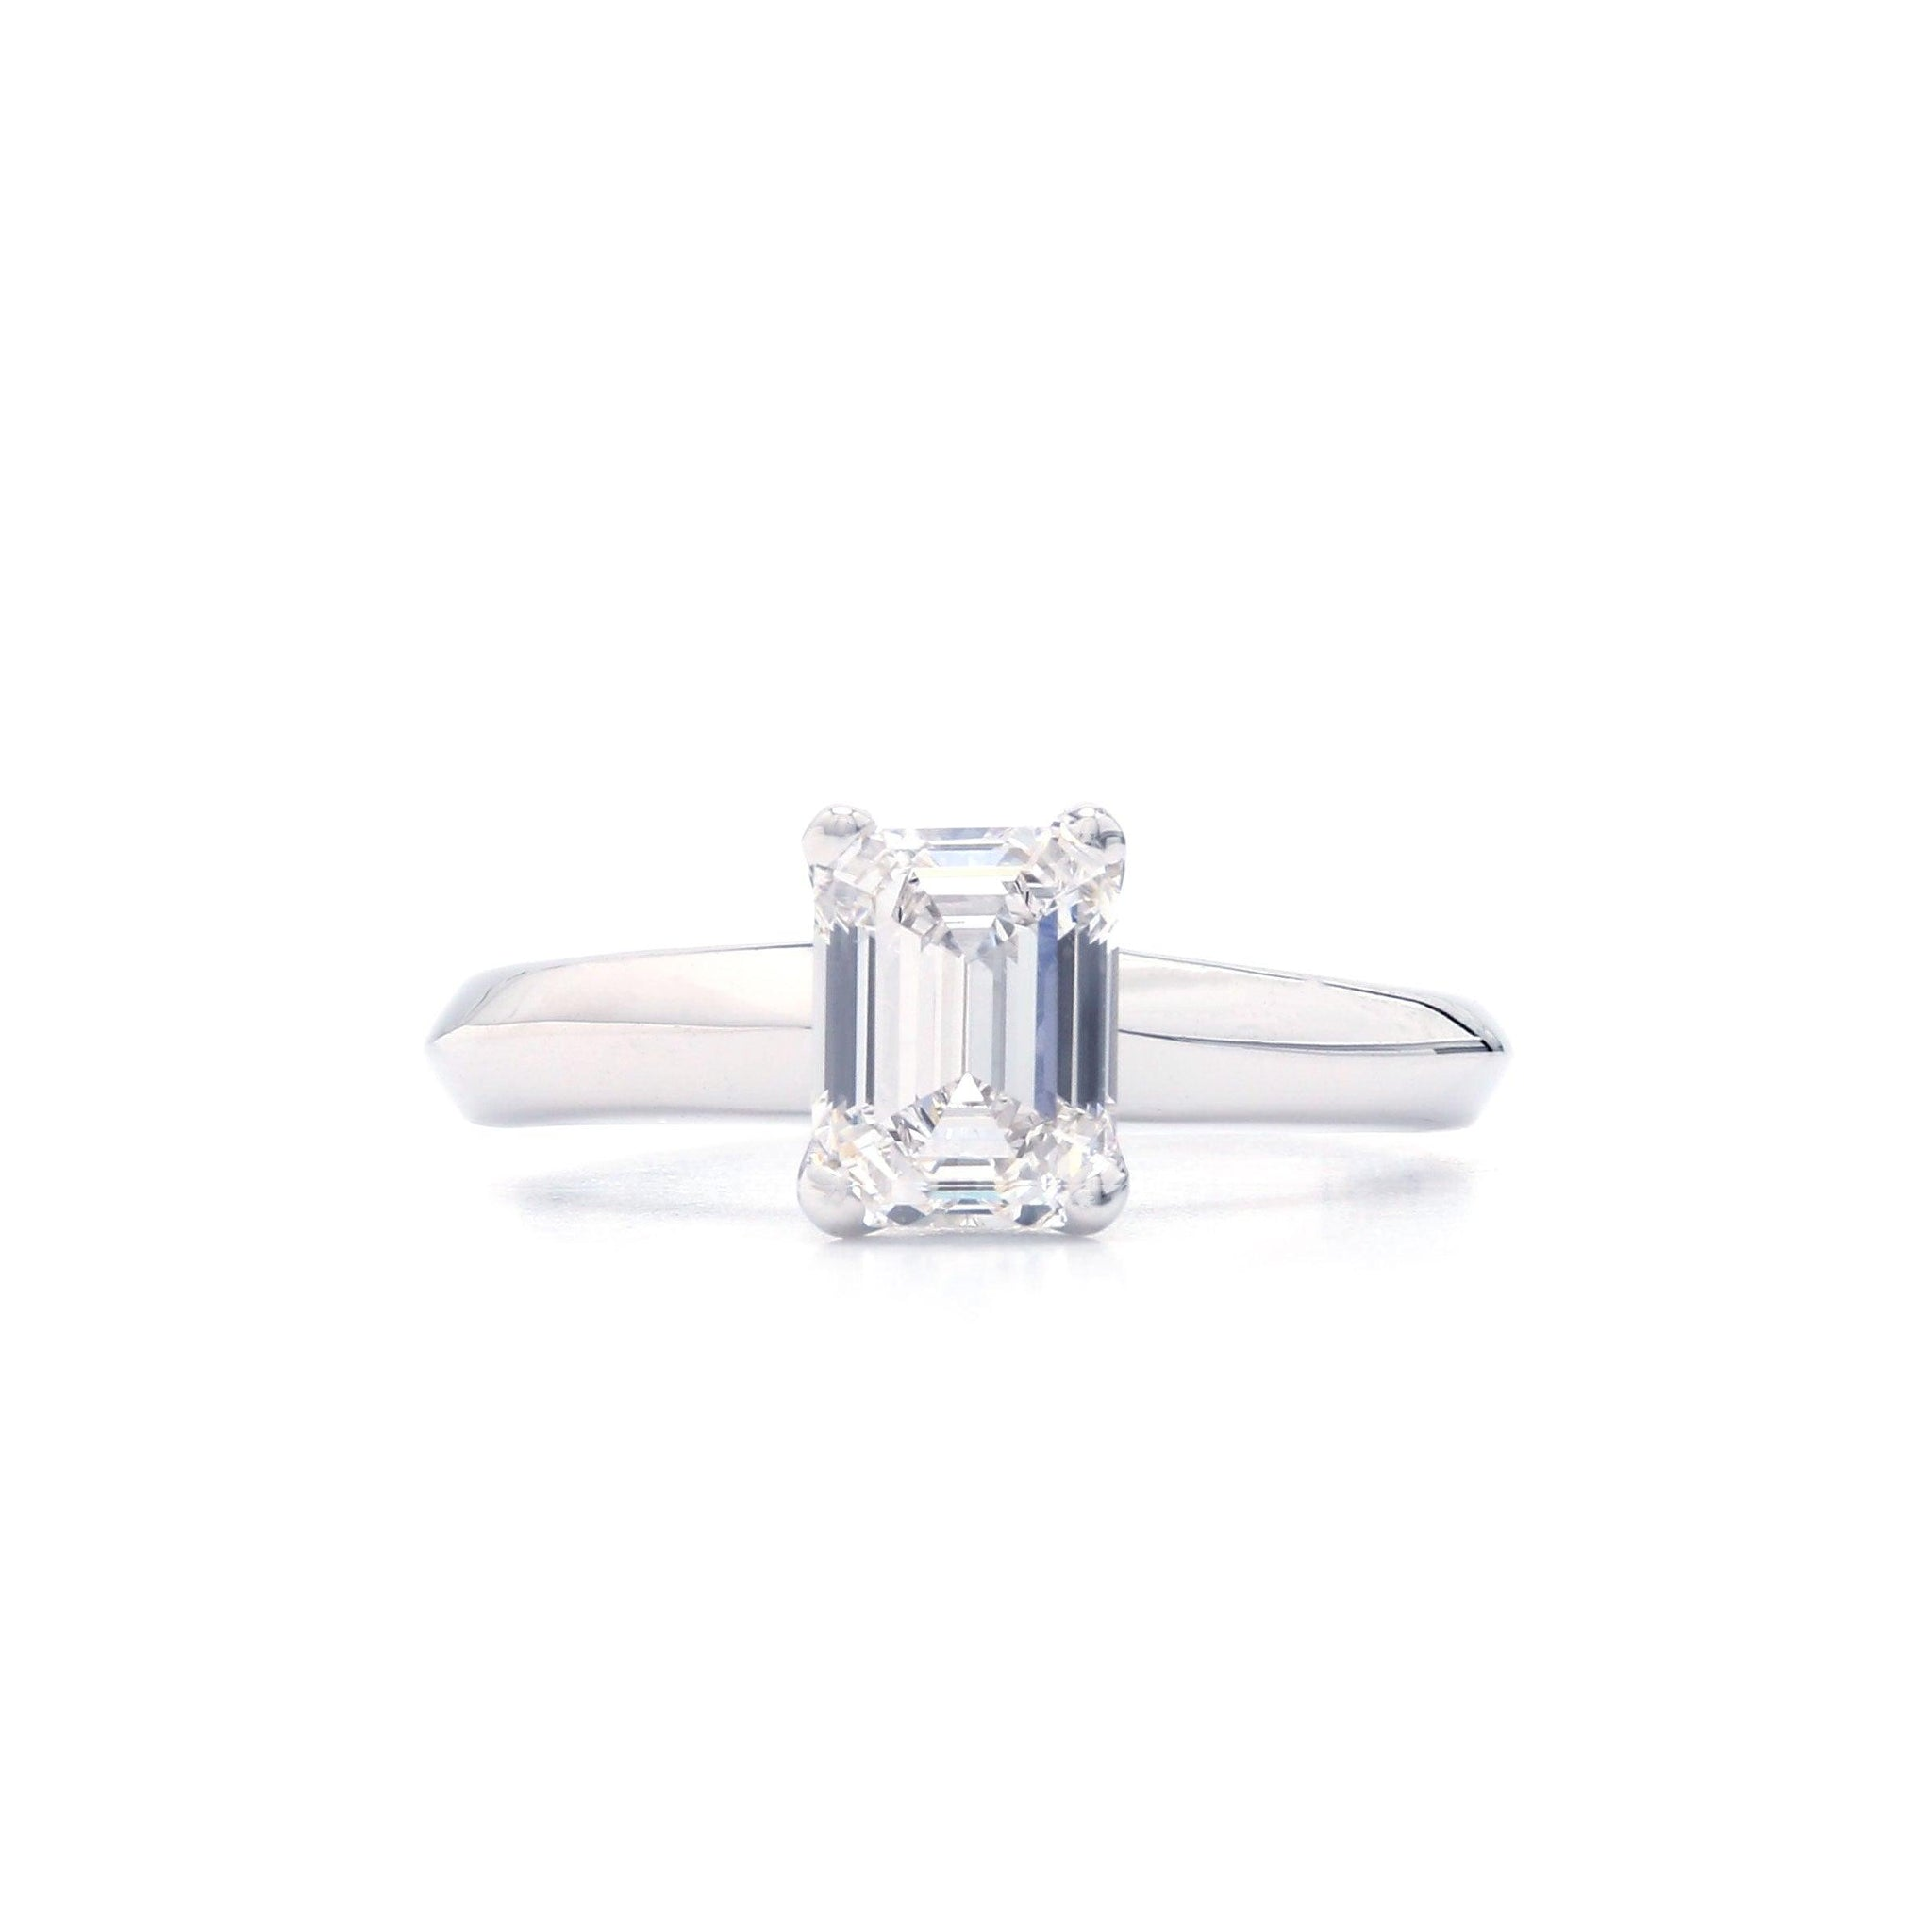 2.06 Carat Emerald Cut Lab-Grown Diamond 14K White Gold Ring (Center: 2.06 Ct. J VS2)